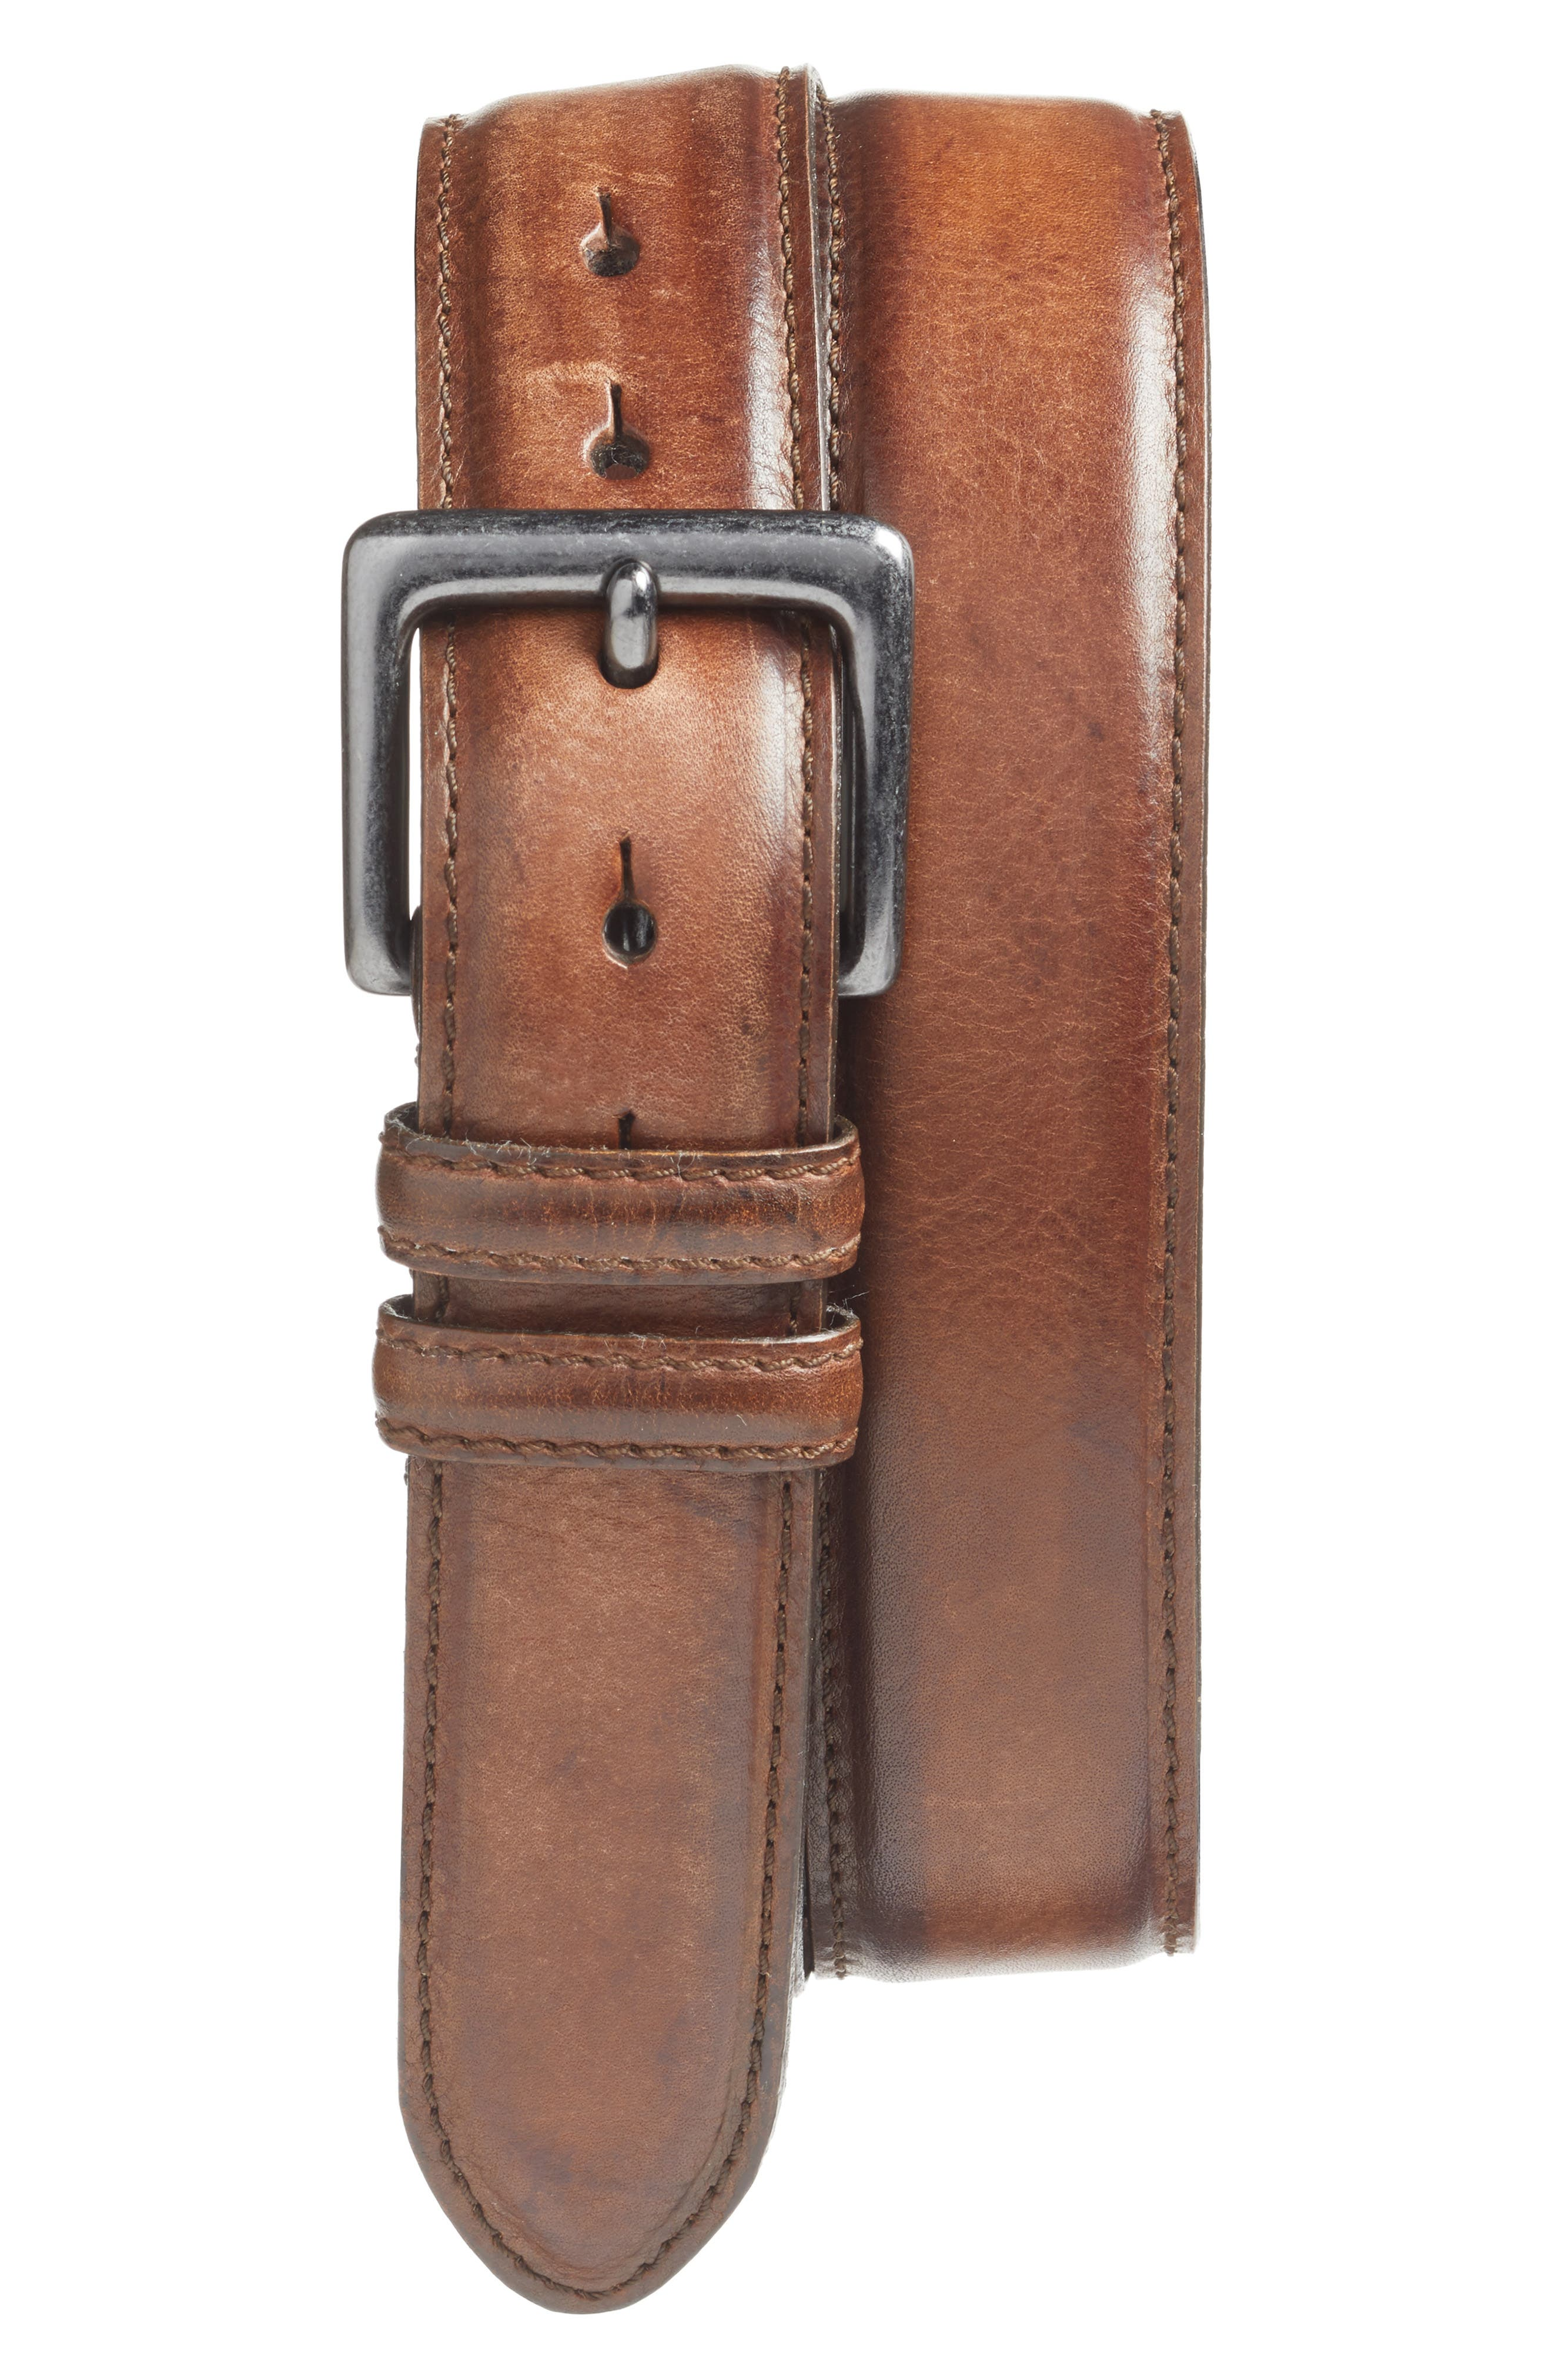 Antiqued leather elevates a fine, American-made belt featuring a weathered nickel-free buckle. Style Name: Torino Leather Belt. Style Number: 5365699. Available in stores.